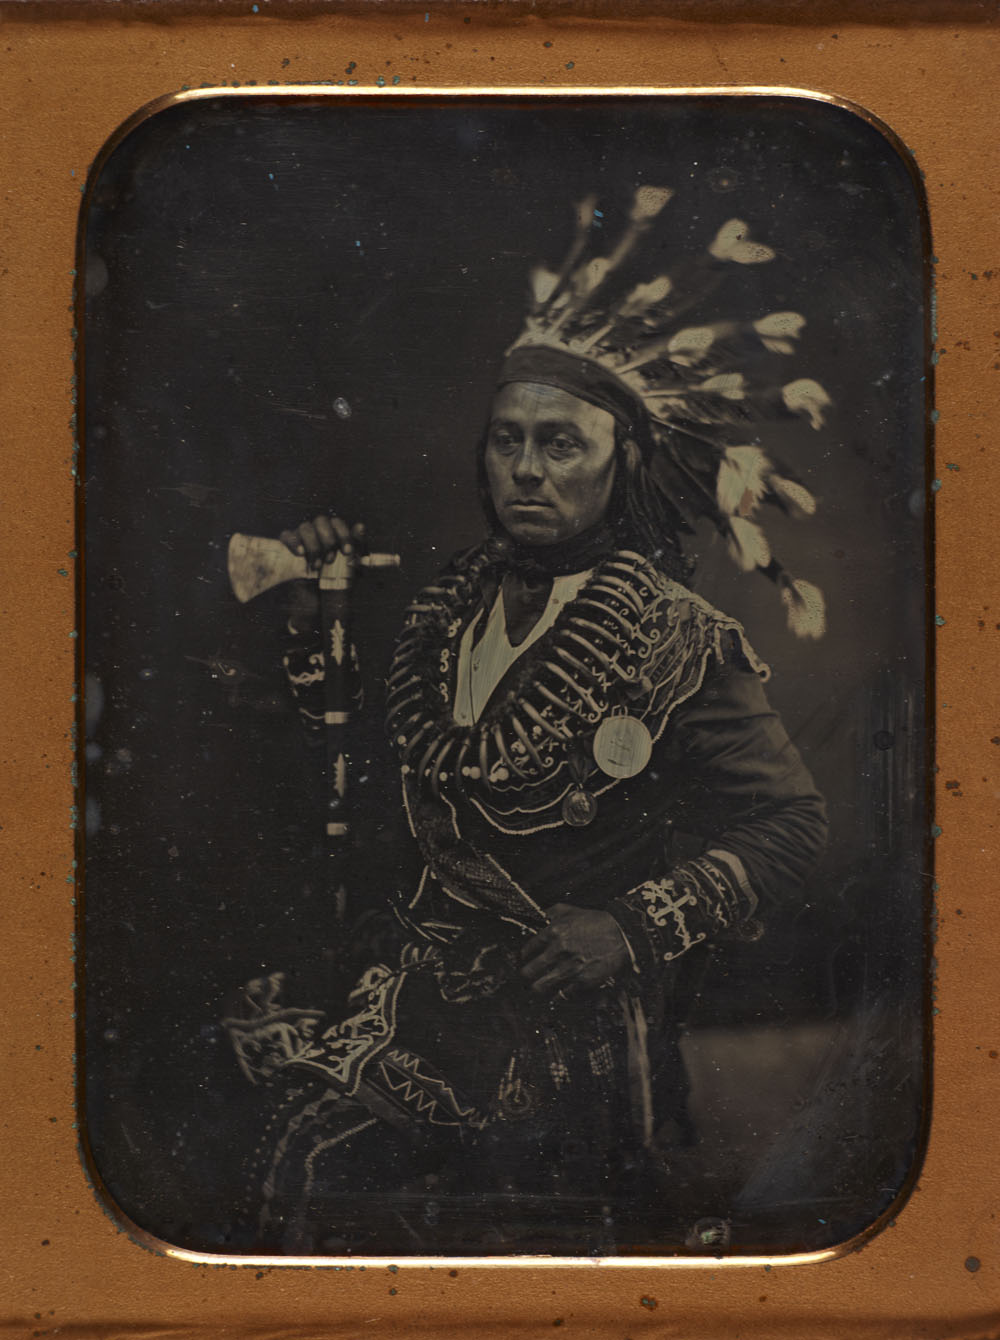 Maun-gua-daus (or Maun-gwa-daus), alias George Henry, original chief of the Ojibway nation of Credit (Upper Canada)